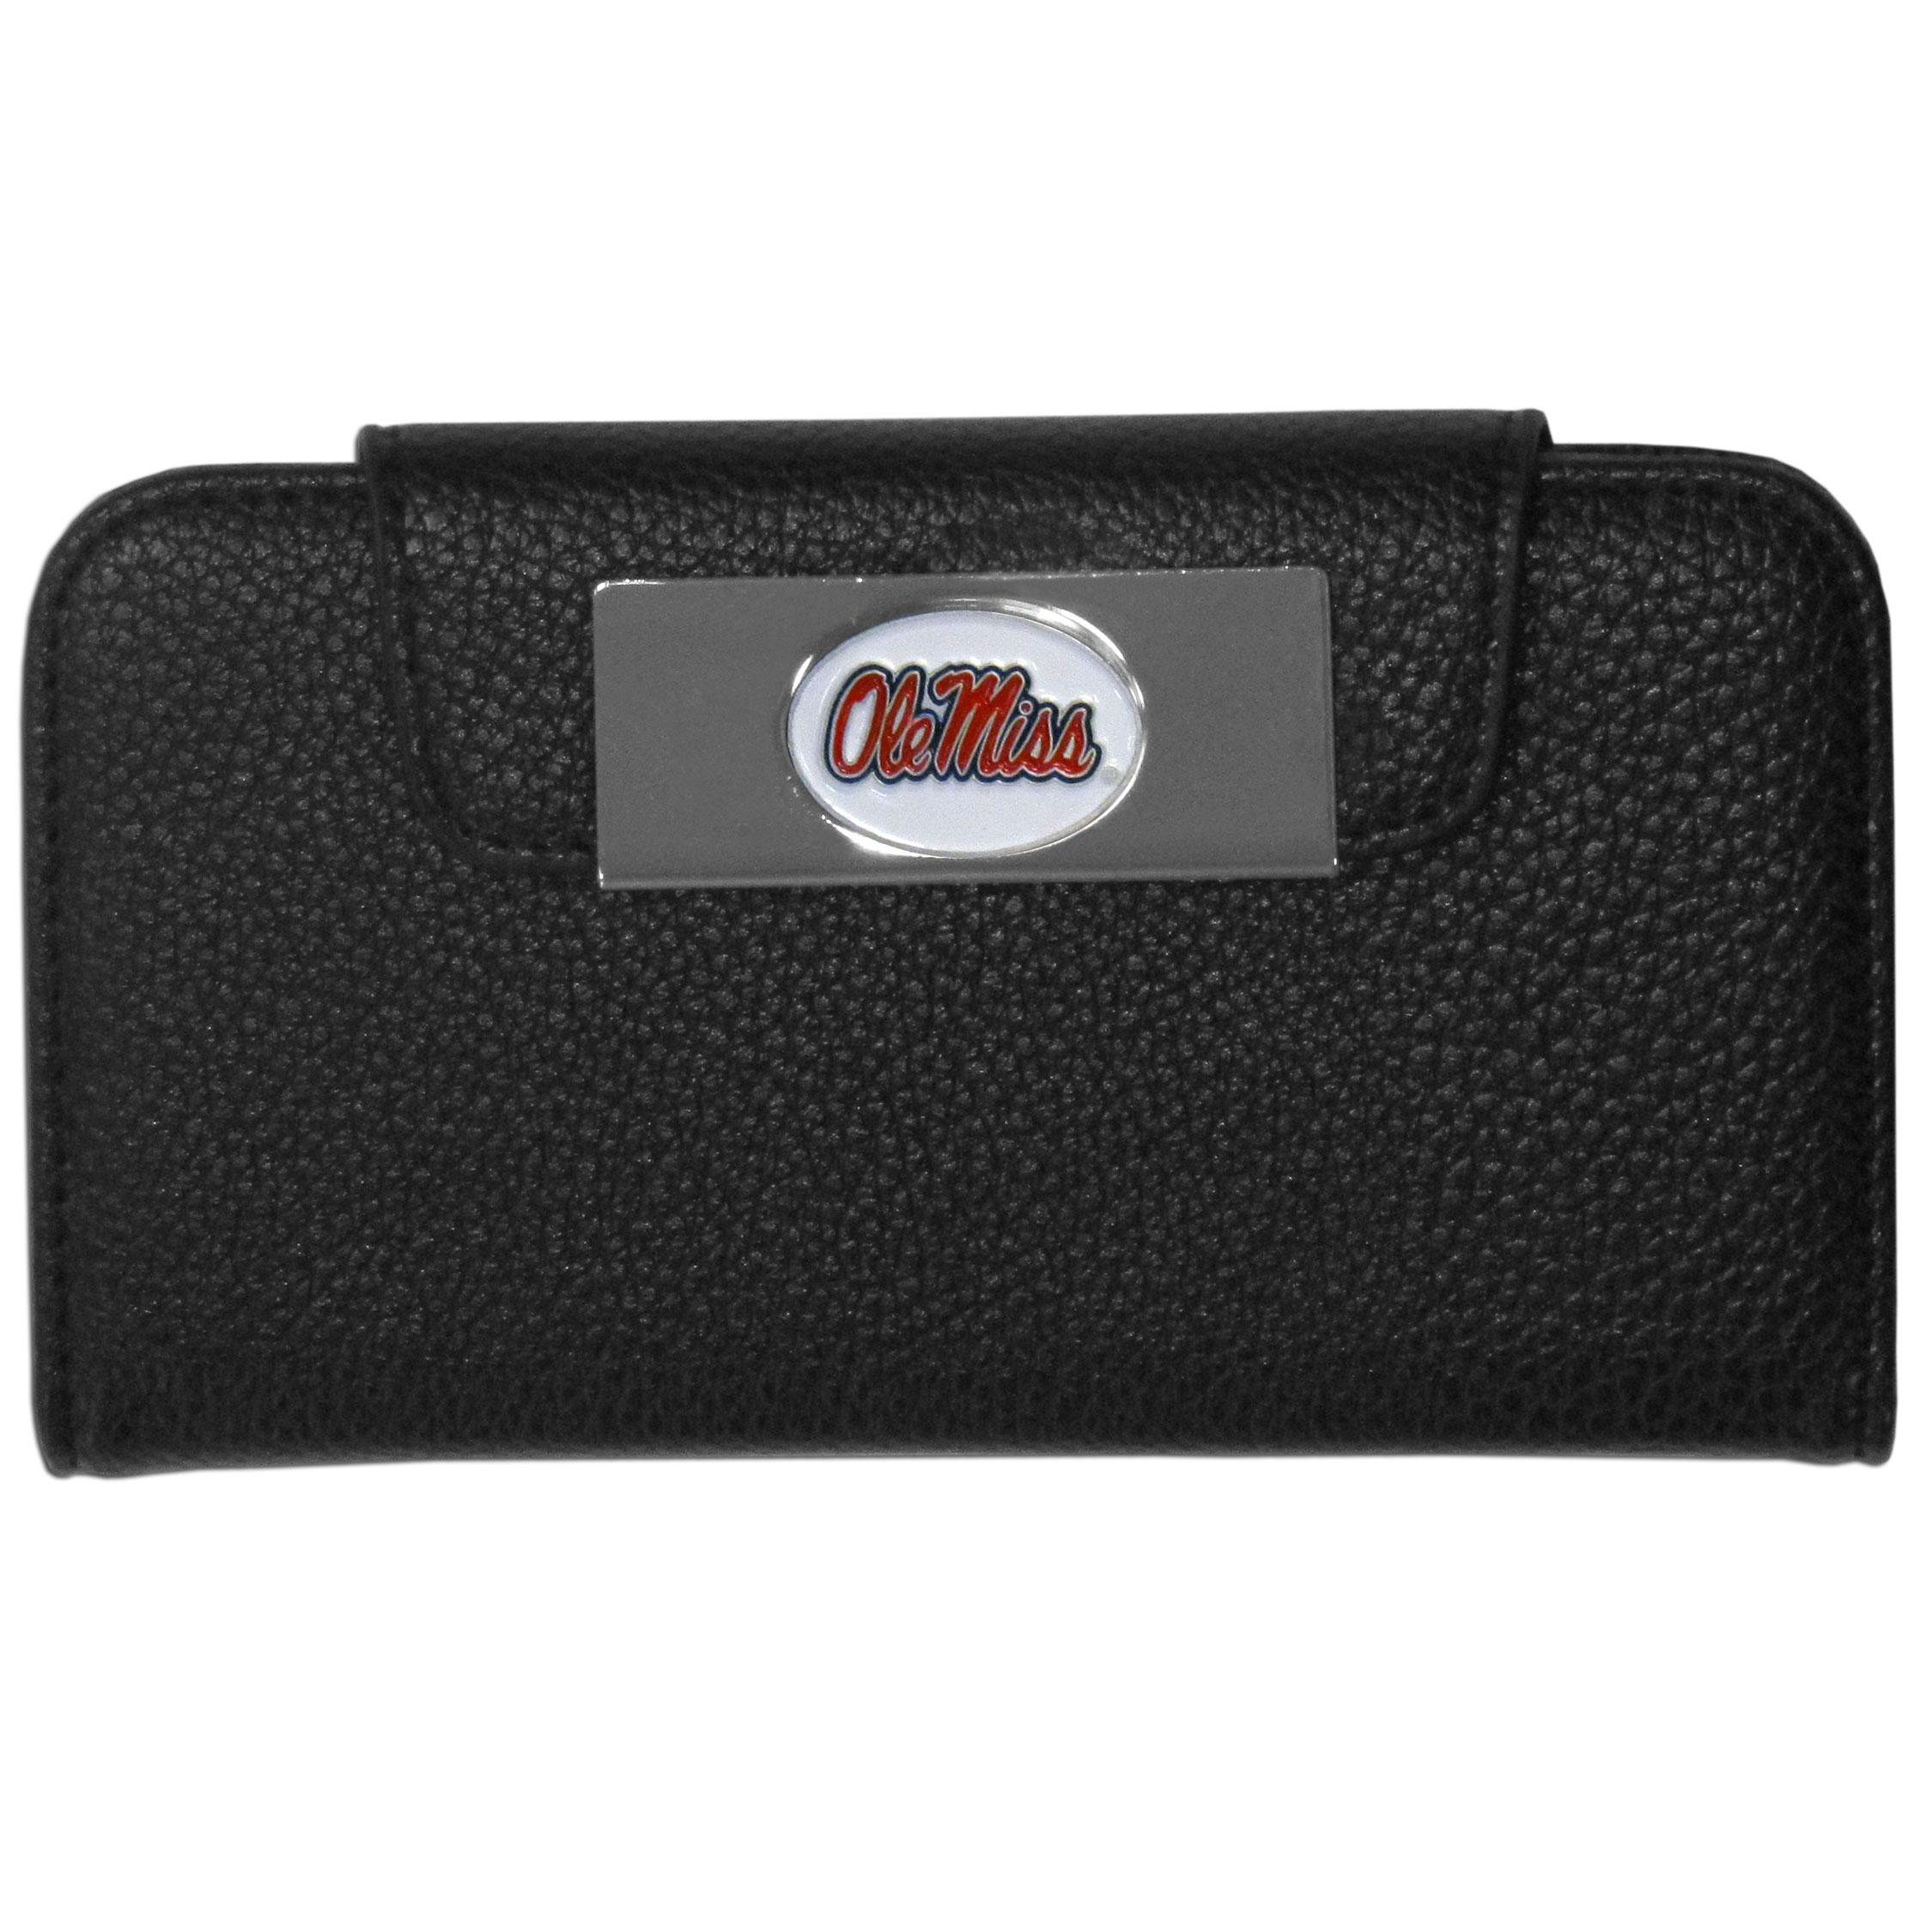 Mississippi Rebels iPhone 5/5S Wallet Case - This new & wildly popular case is ideal for those who like to travel light! The stylish case has an inner hard shell that securely holds your phone while allowing complete access to the phone's functionality. The flip cover has slots for credit cards, business cards and identification. The magnetic flip cover has a metal Mississippi Rebels emblem on a high polish chrome backing. Fits the iPhone 5/5S